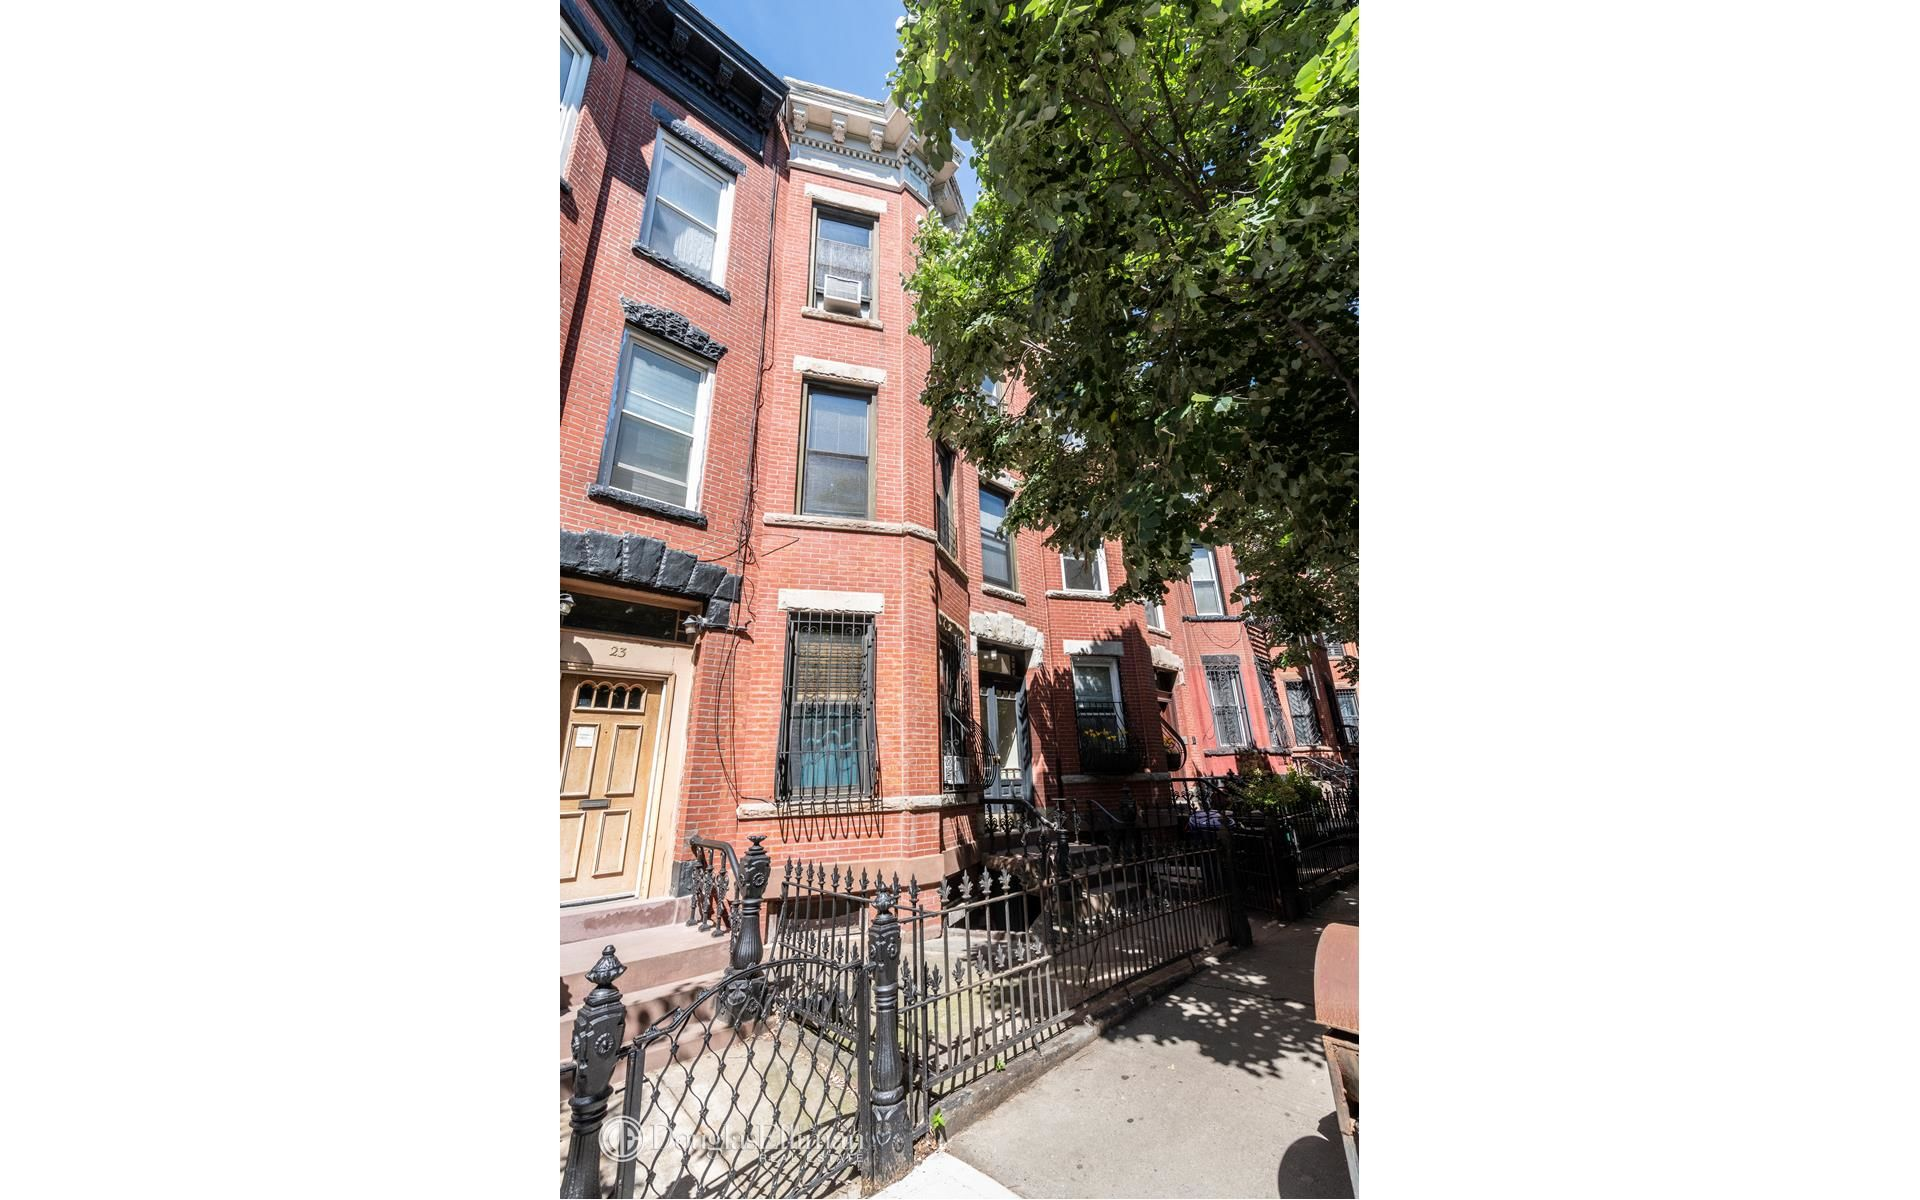 25 Saint Marks Ave Photo 5 - ELLIMAN-3282769